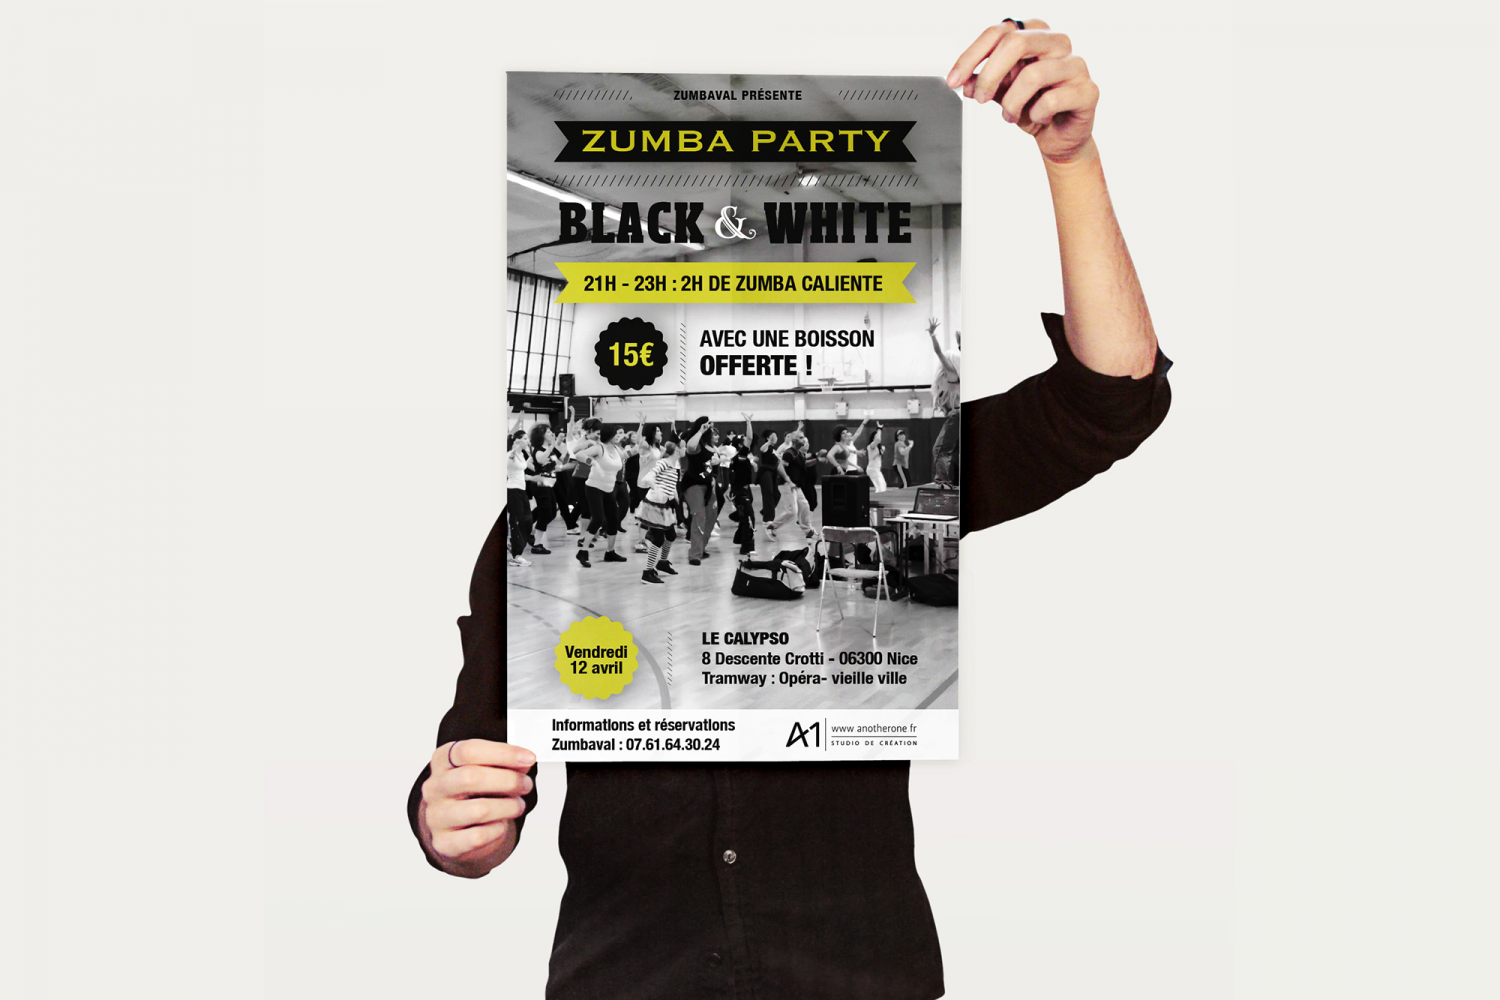 Flyer - Zumba Party Black & white